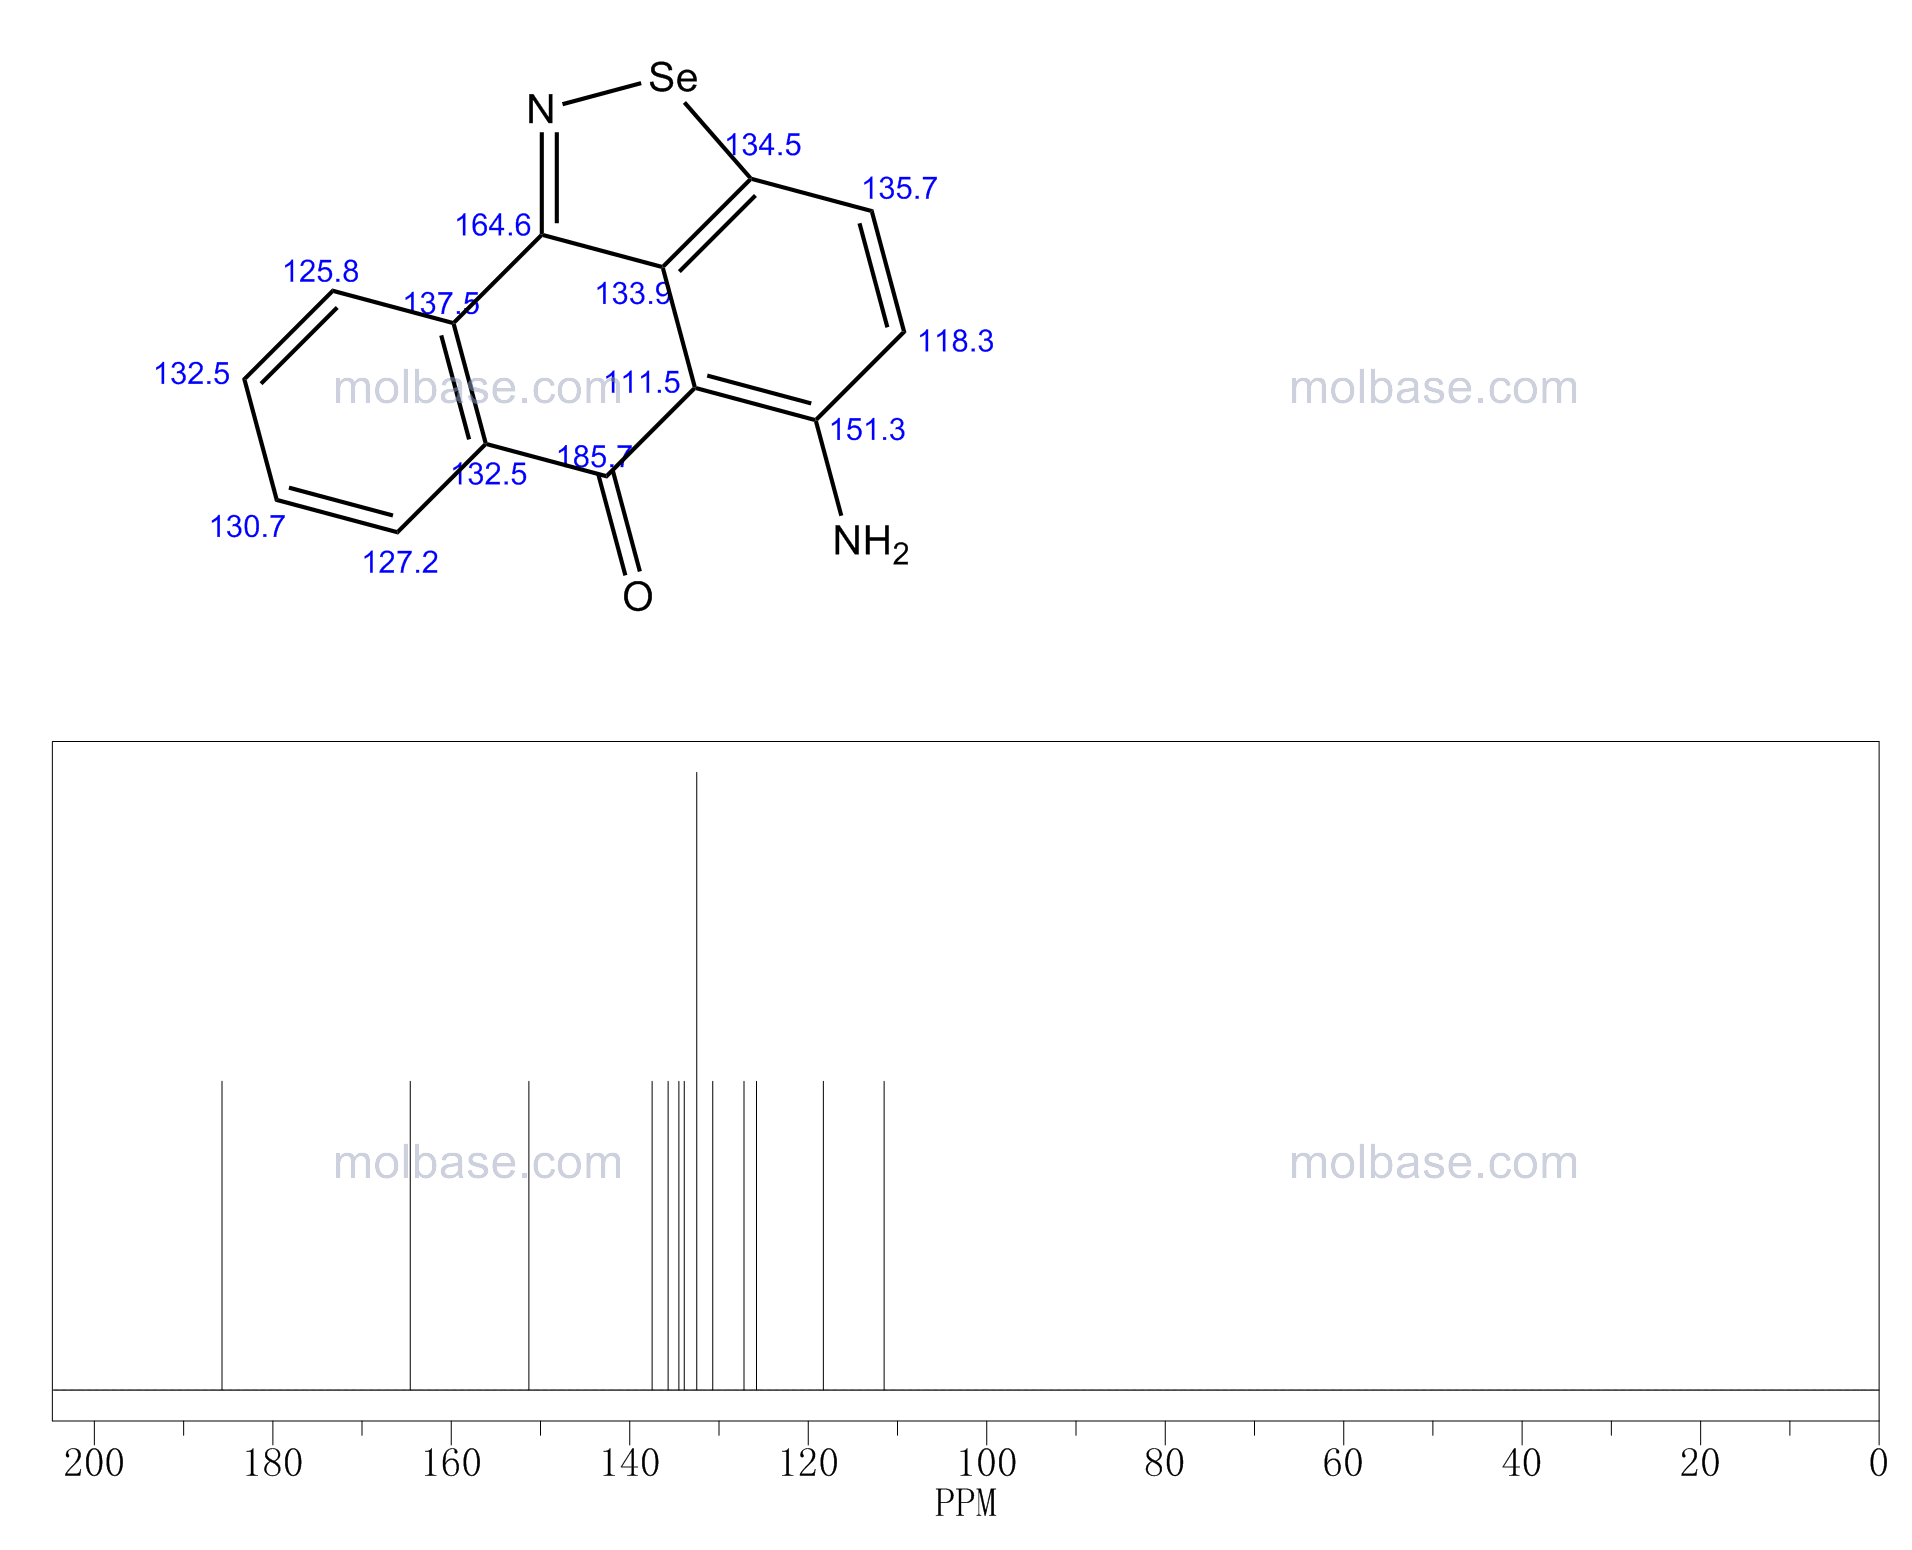 5-Amino-6H-anthra(9,1-cd)(1,2)selenazol-6-one NMR spectra analysis, Chemical CAS NO. 6313-42-4 NMR spectral analysis, 5-Amino-6H-anthra(9,1-cd)(1,2)selenazol-6-one C-NMR spectrum